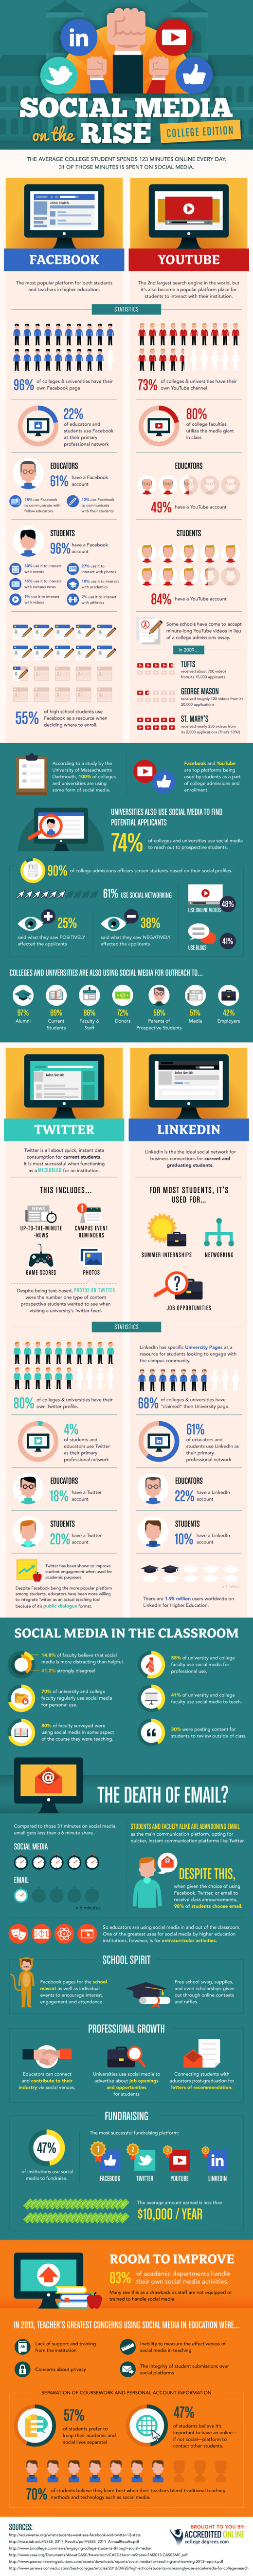 Social Media on the Rise Infographic